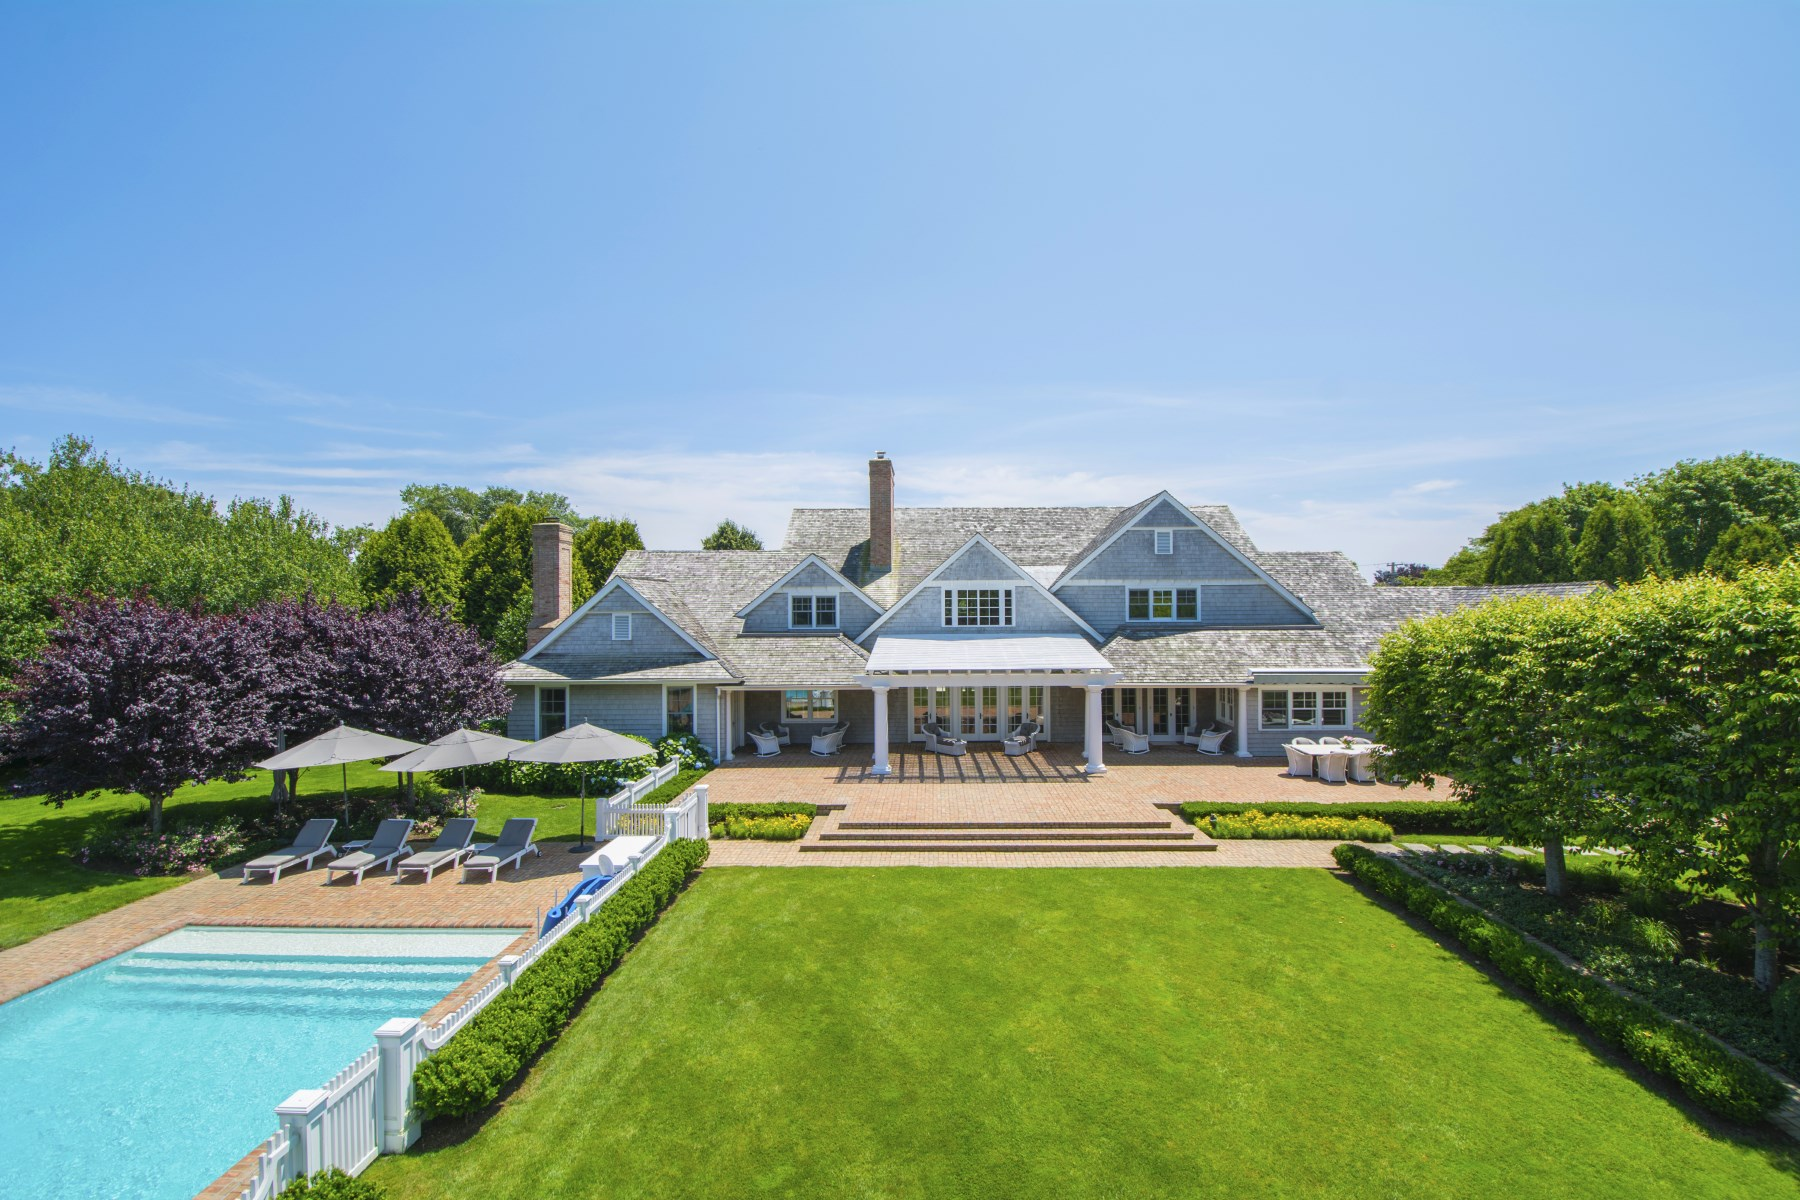 Casa Unifamiliar por un Venta en Southampton Village Estate 295 Wickapogue Road, Southampton, Nueva York, 11968 Estados Unidos